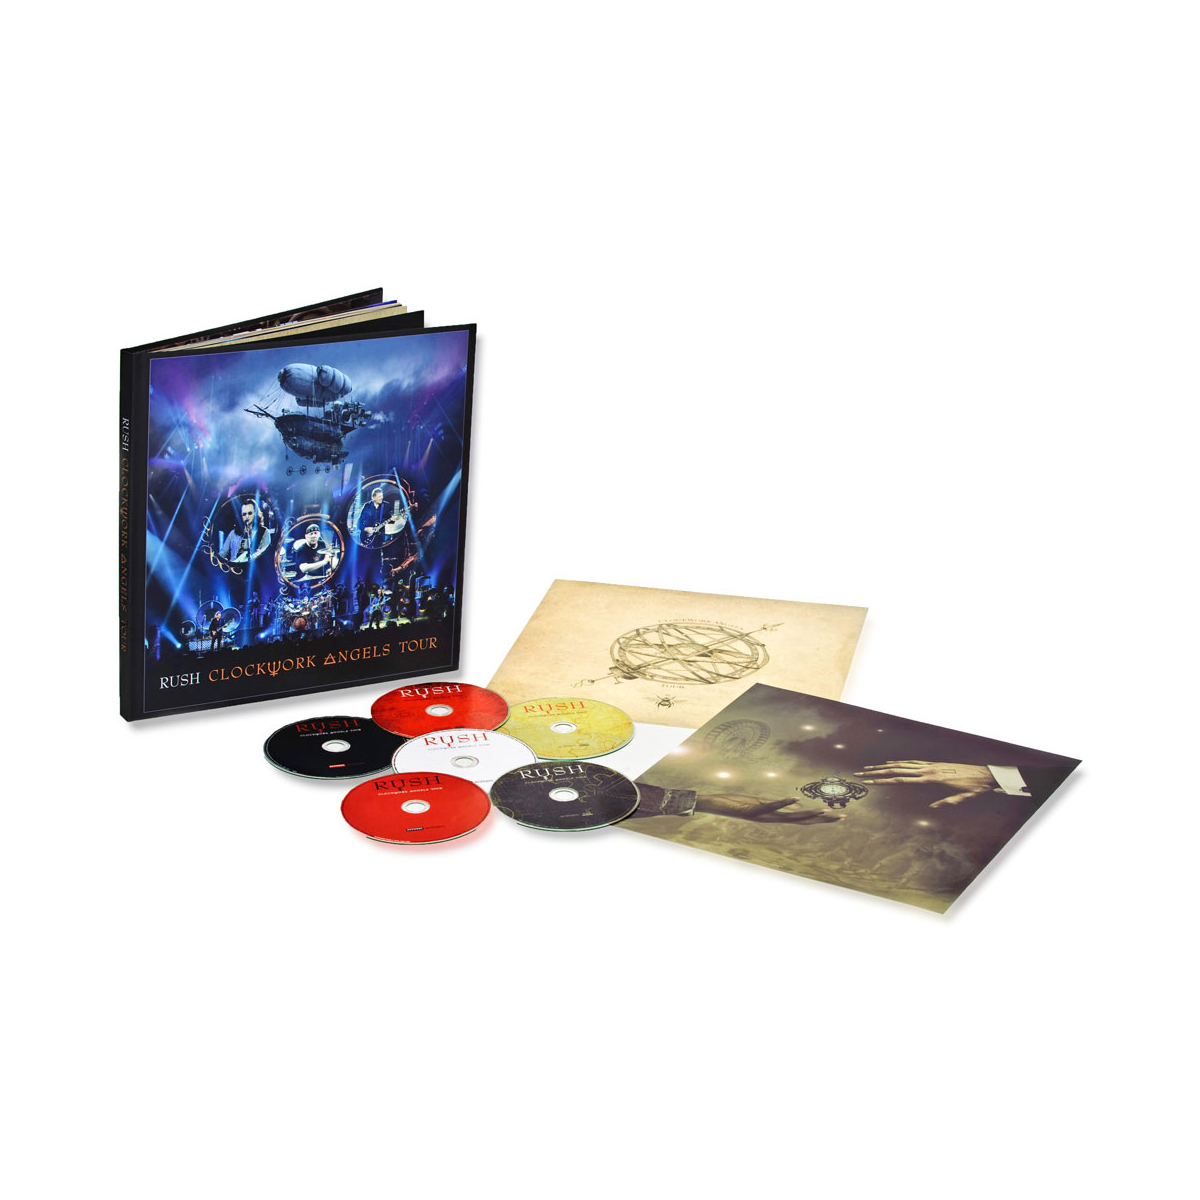 Rush Clockwork Angels Tour - Limited Edition Deluxe Package